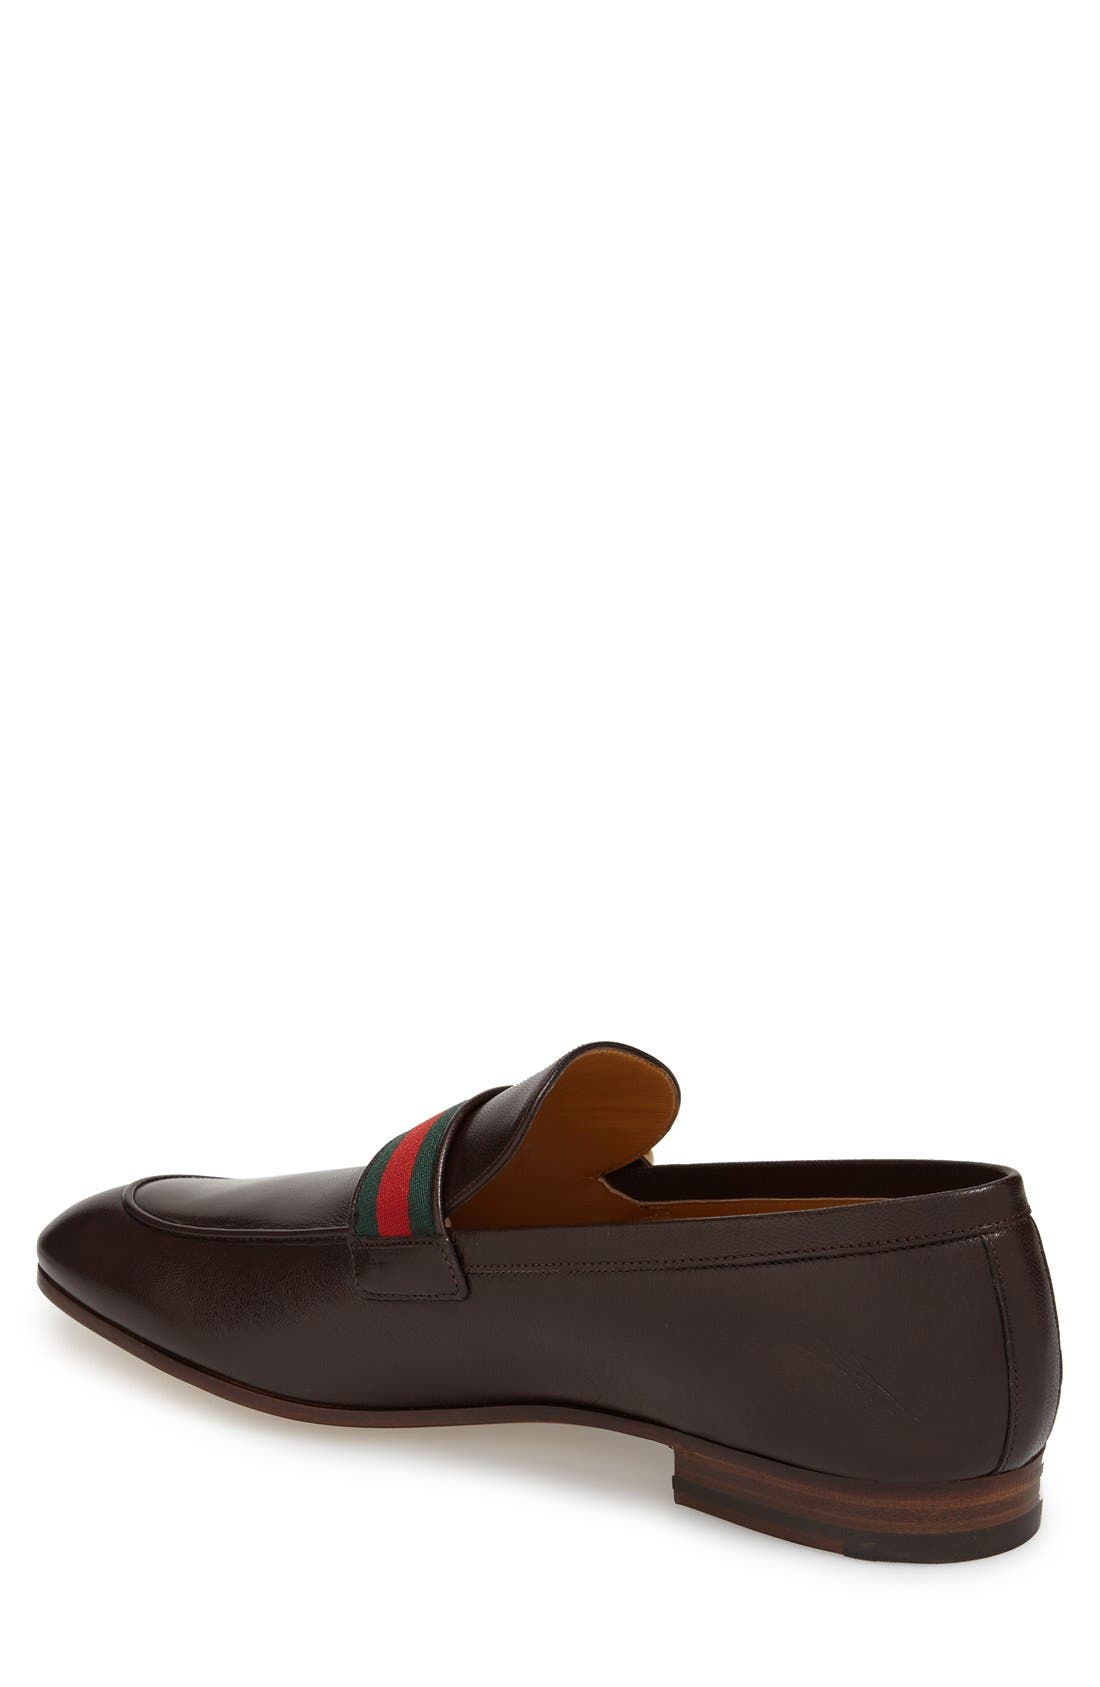 Donnie Bit Loafer,                             Alternate thumbnail 2, color,                             Cocoa Leather